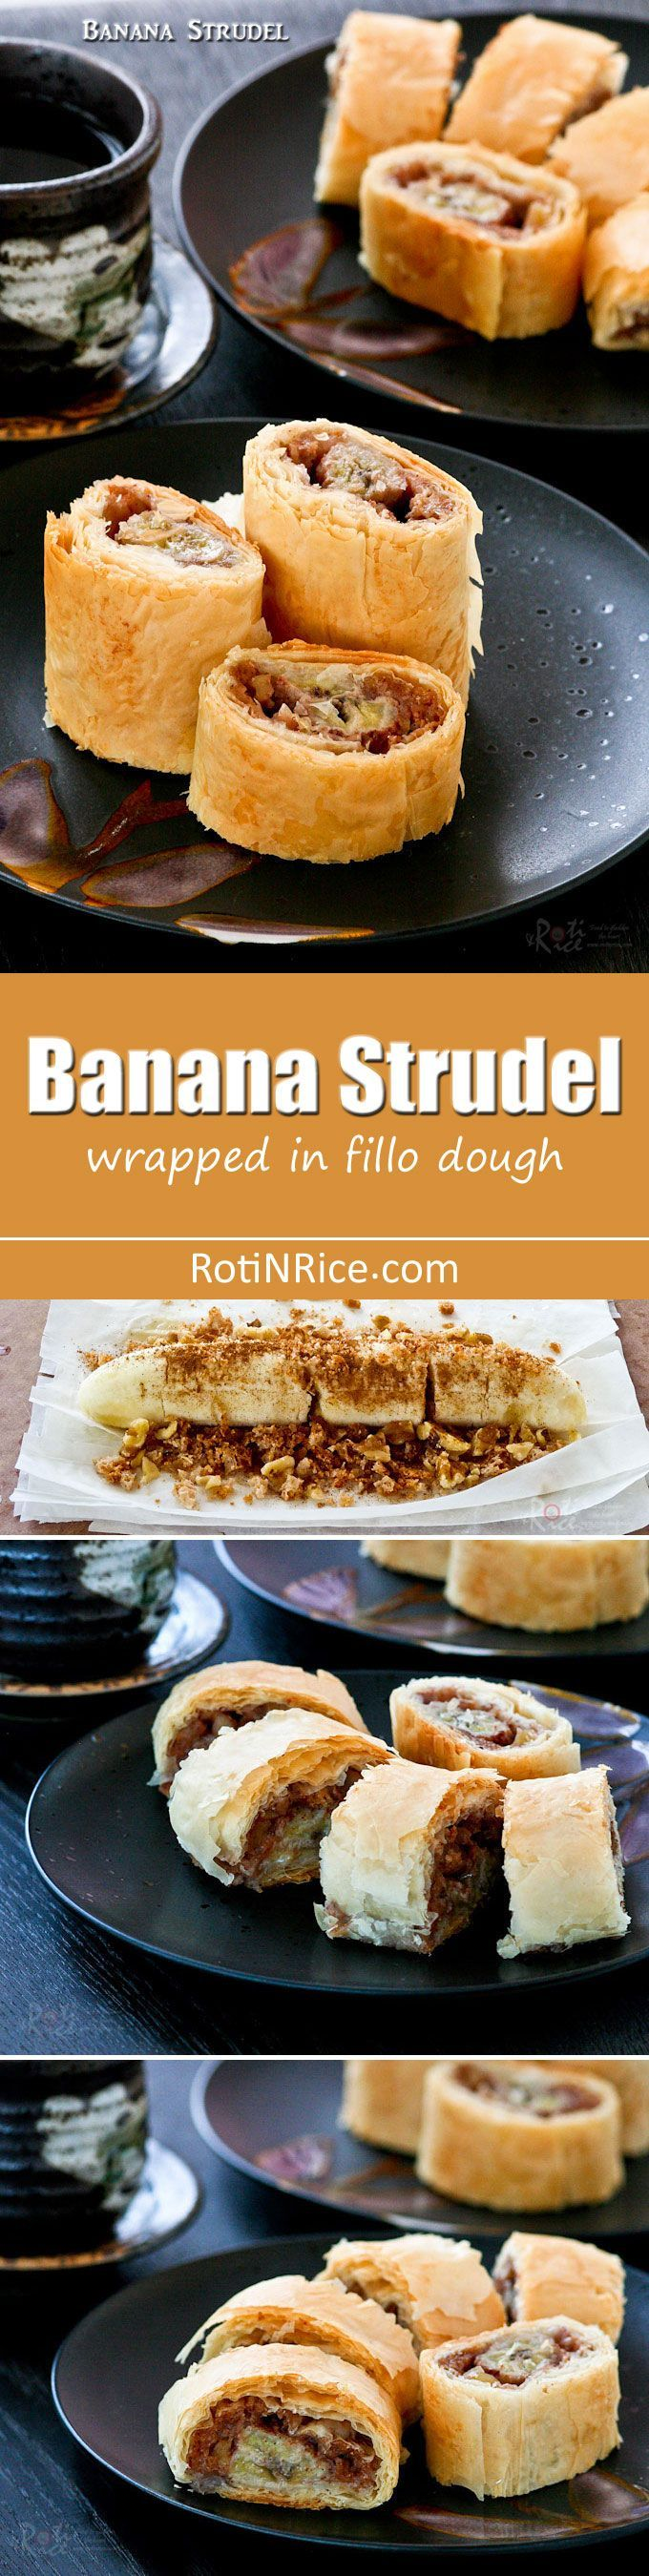 Easy Banana Strudel with cinnamon flavored bananas, breadcrumbs, and walnuts wrapped in fillo dough. Delicious on its own or with a scoop of ice cream. | http://RotiNRice.com